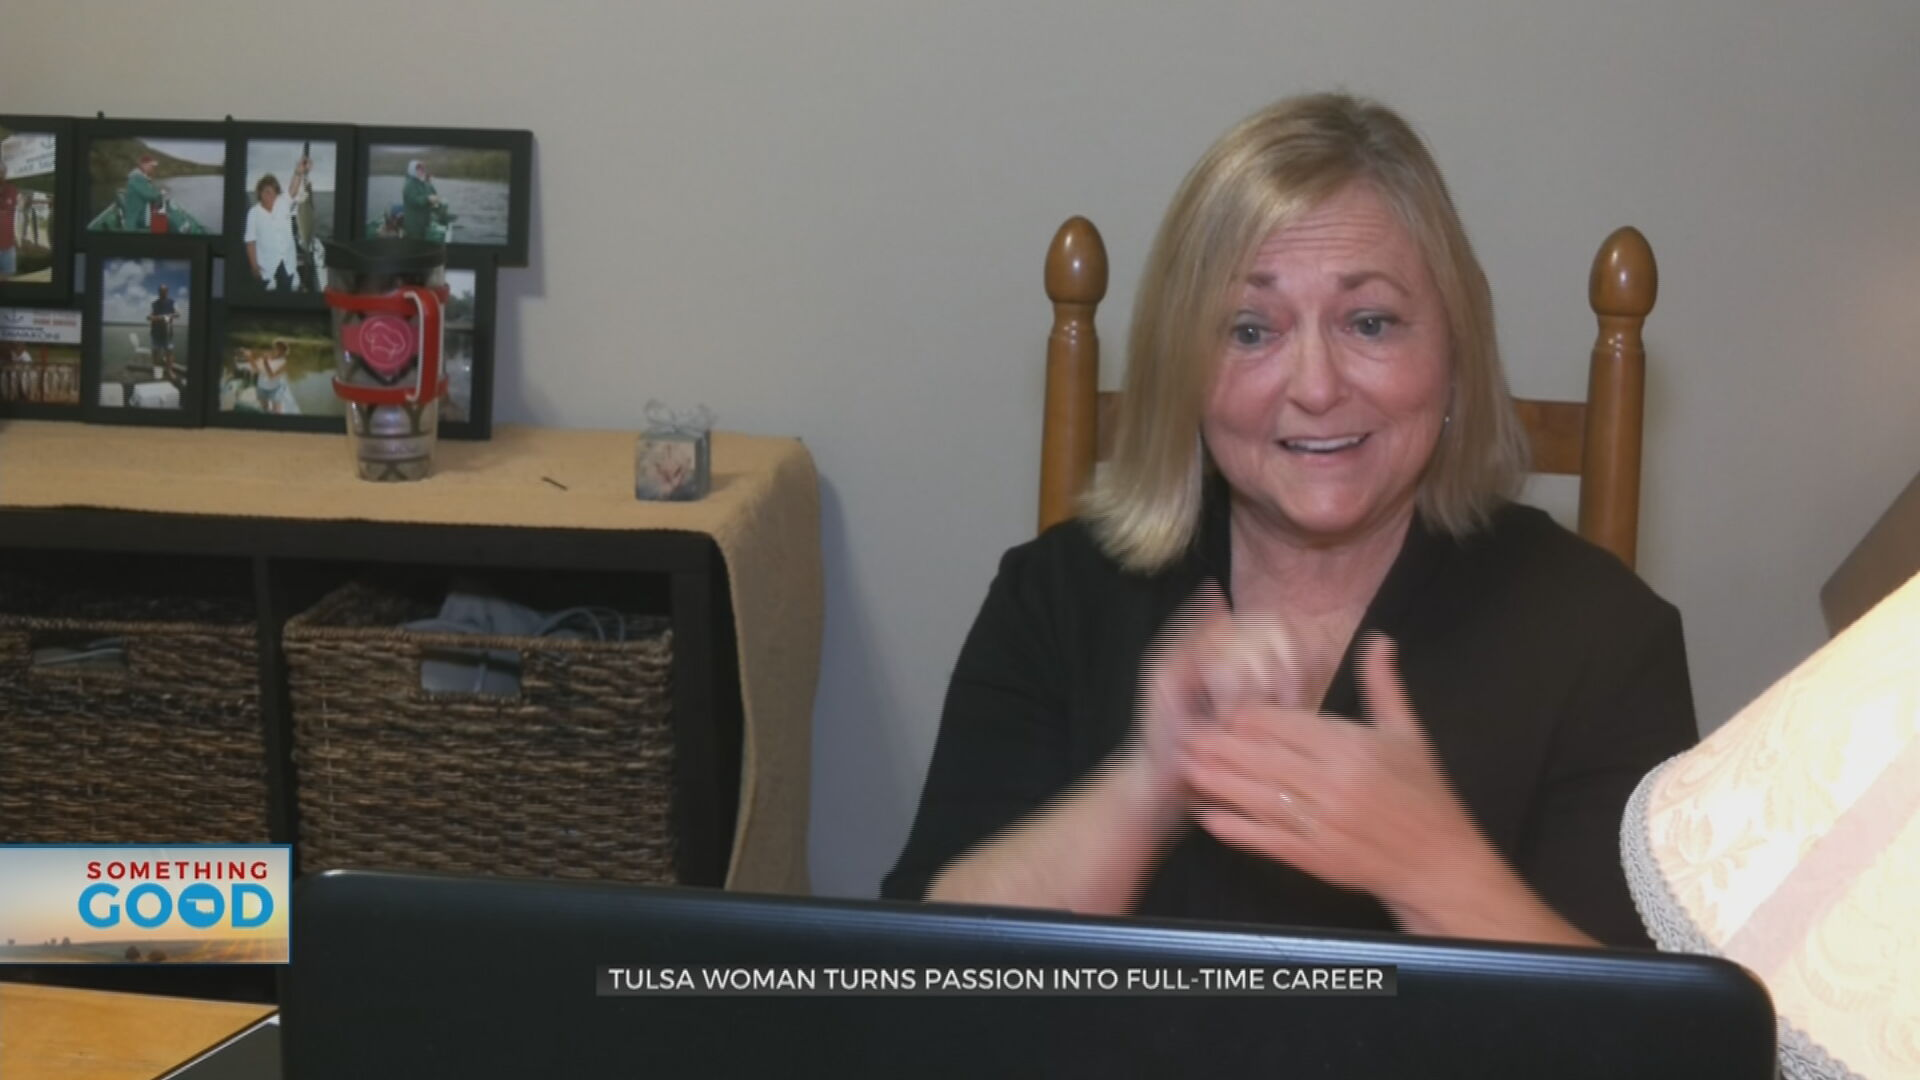 Tulsa Woman Turns Passion For Sign Language Into Labor Of Love